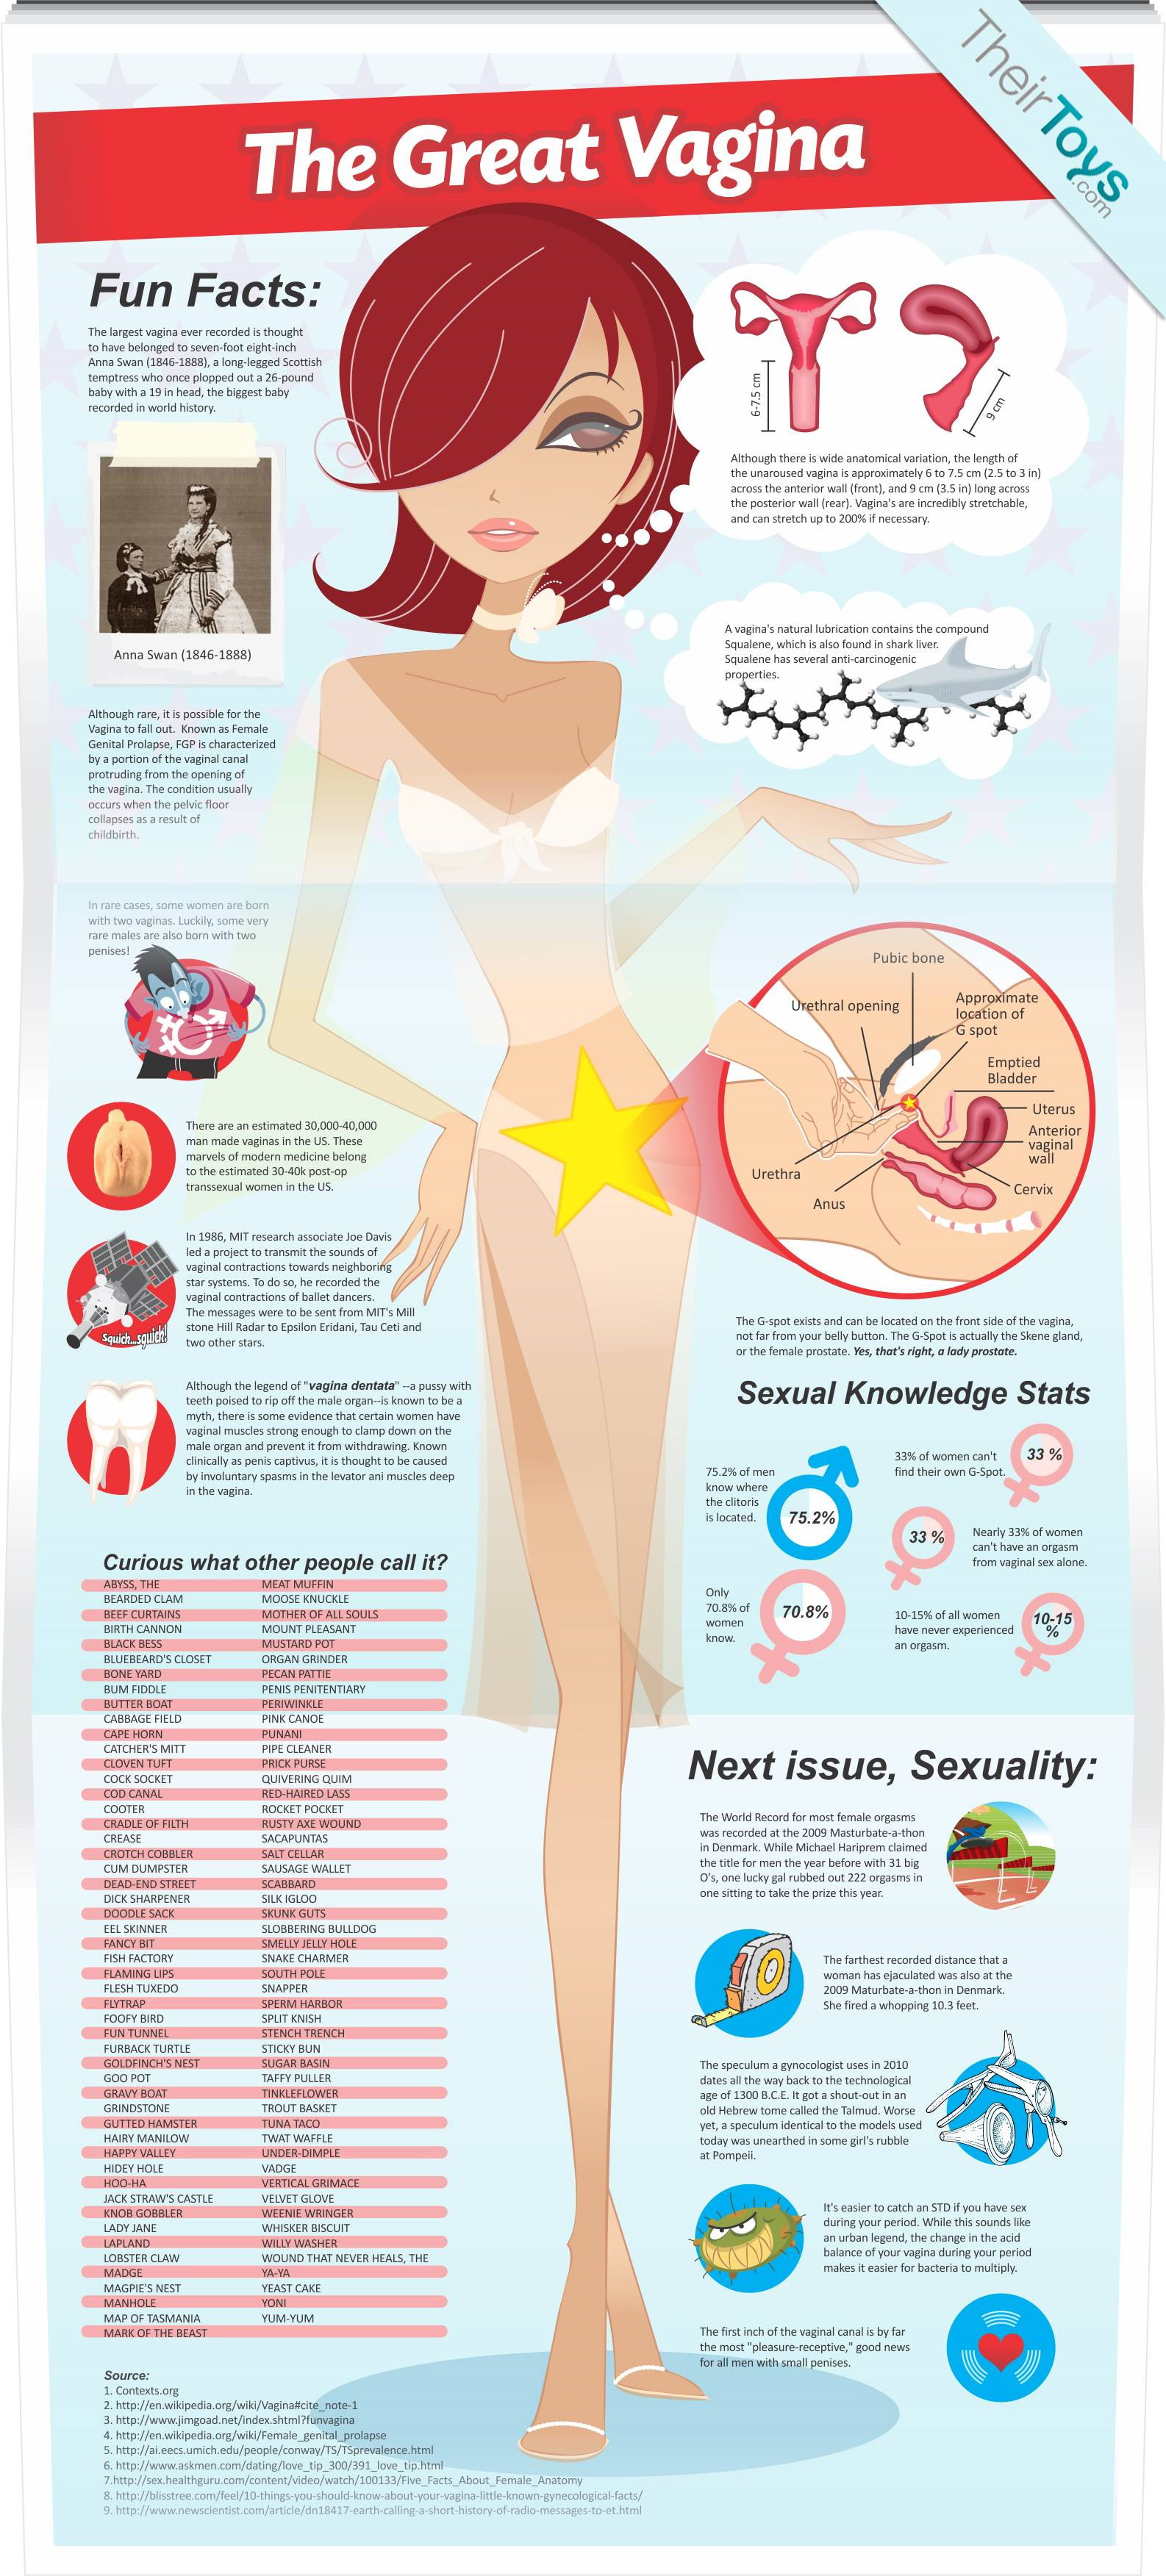 vagina infographic, infographic, the great vagina, vaginas infographic